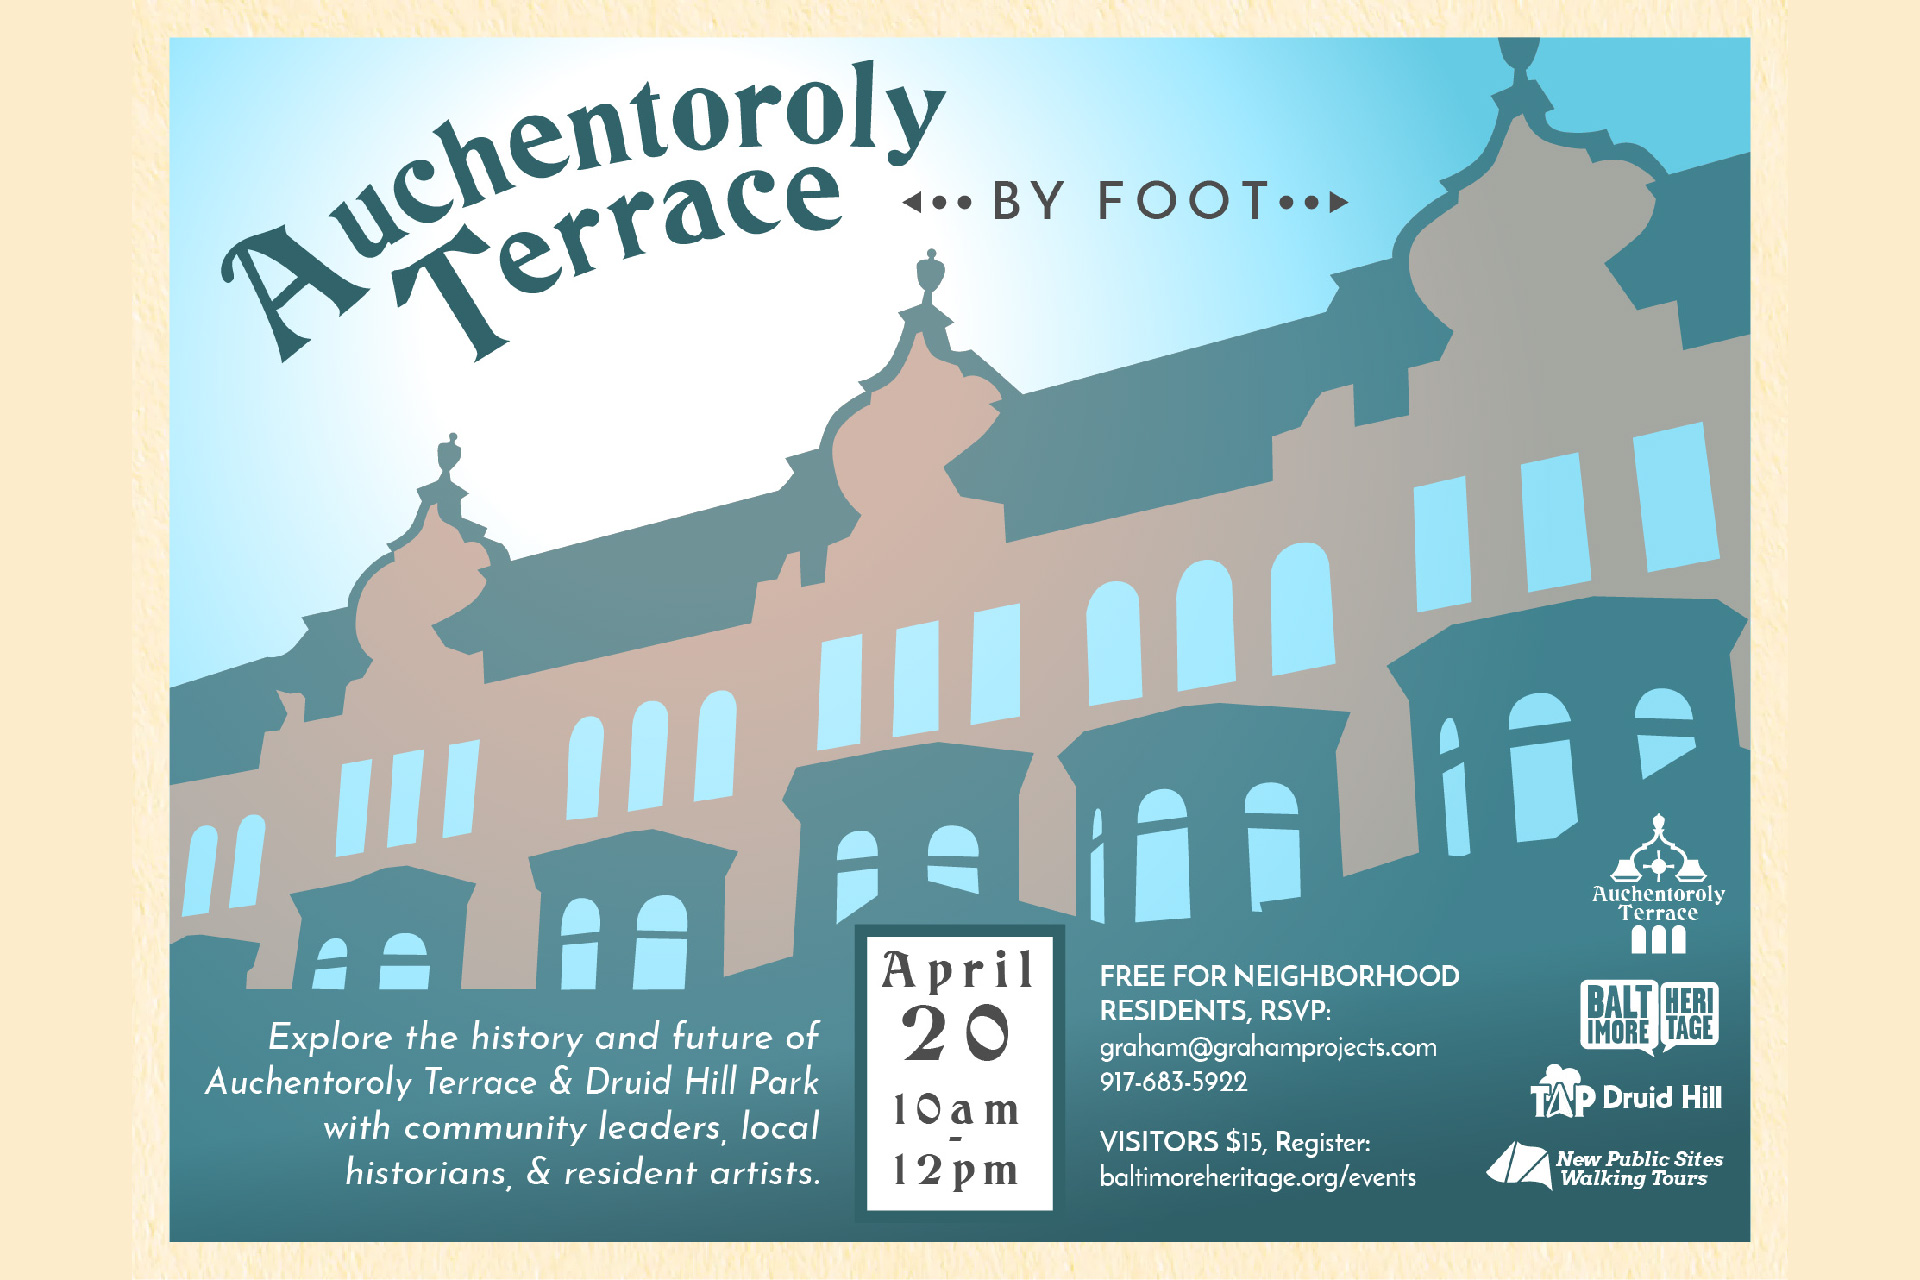 Auchentoroly Terrace by Foot flyer